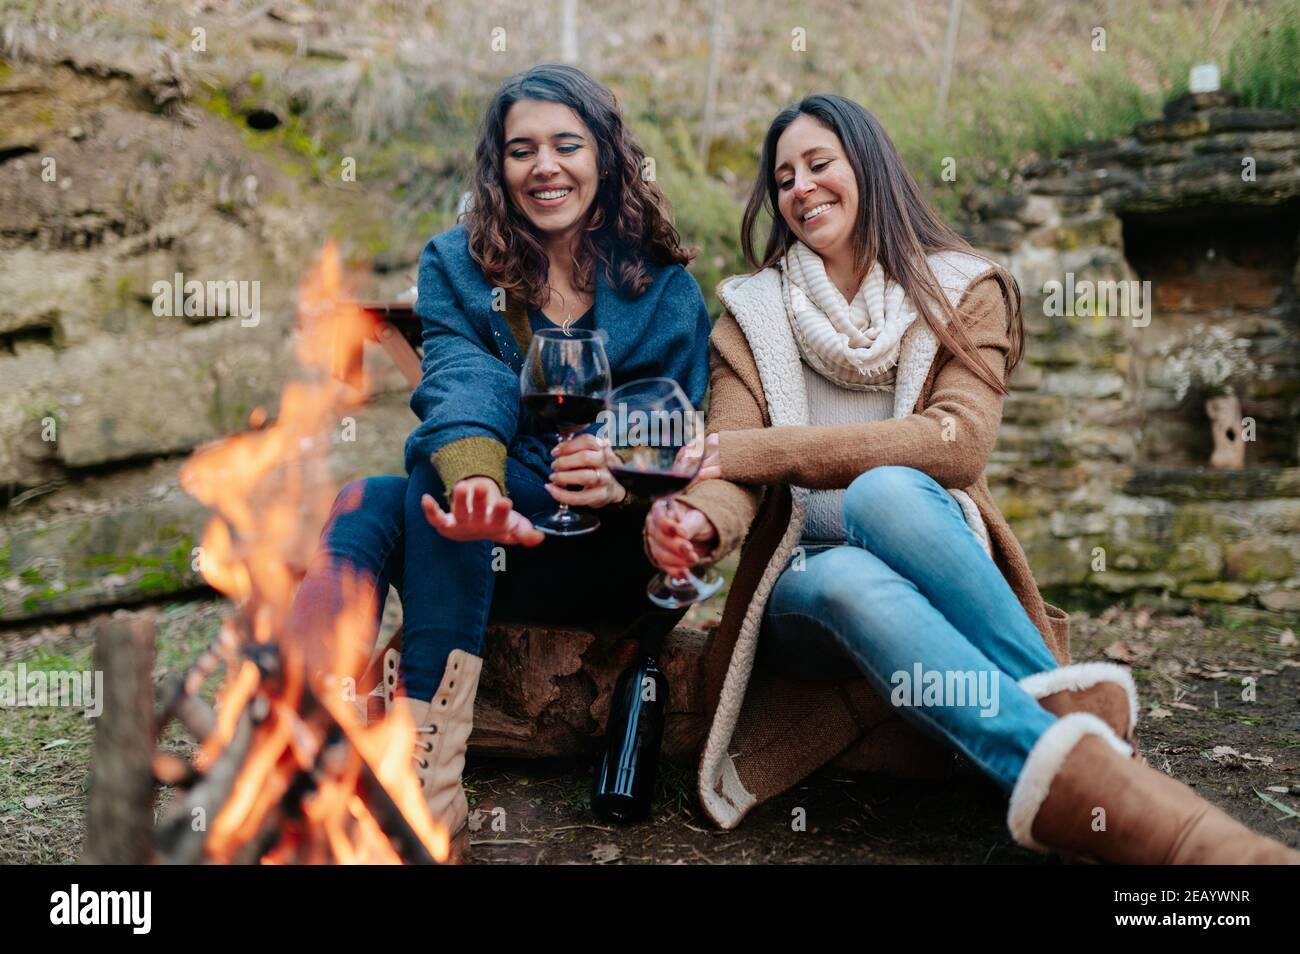 young happy women drinking glass of red wine. Females warming next to the fire. Campfire, outdoors activities concept. Stock Photo